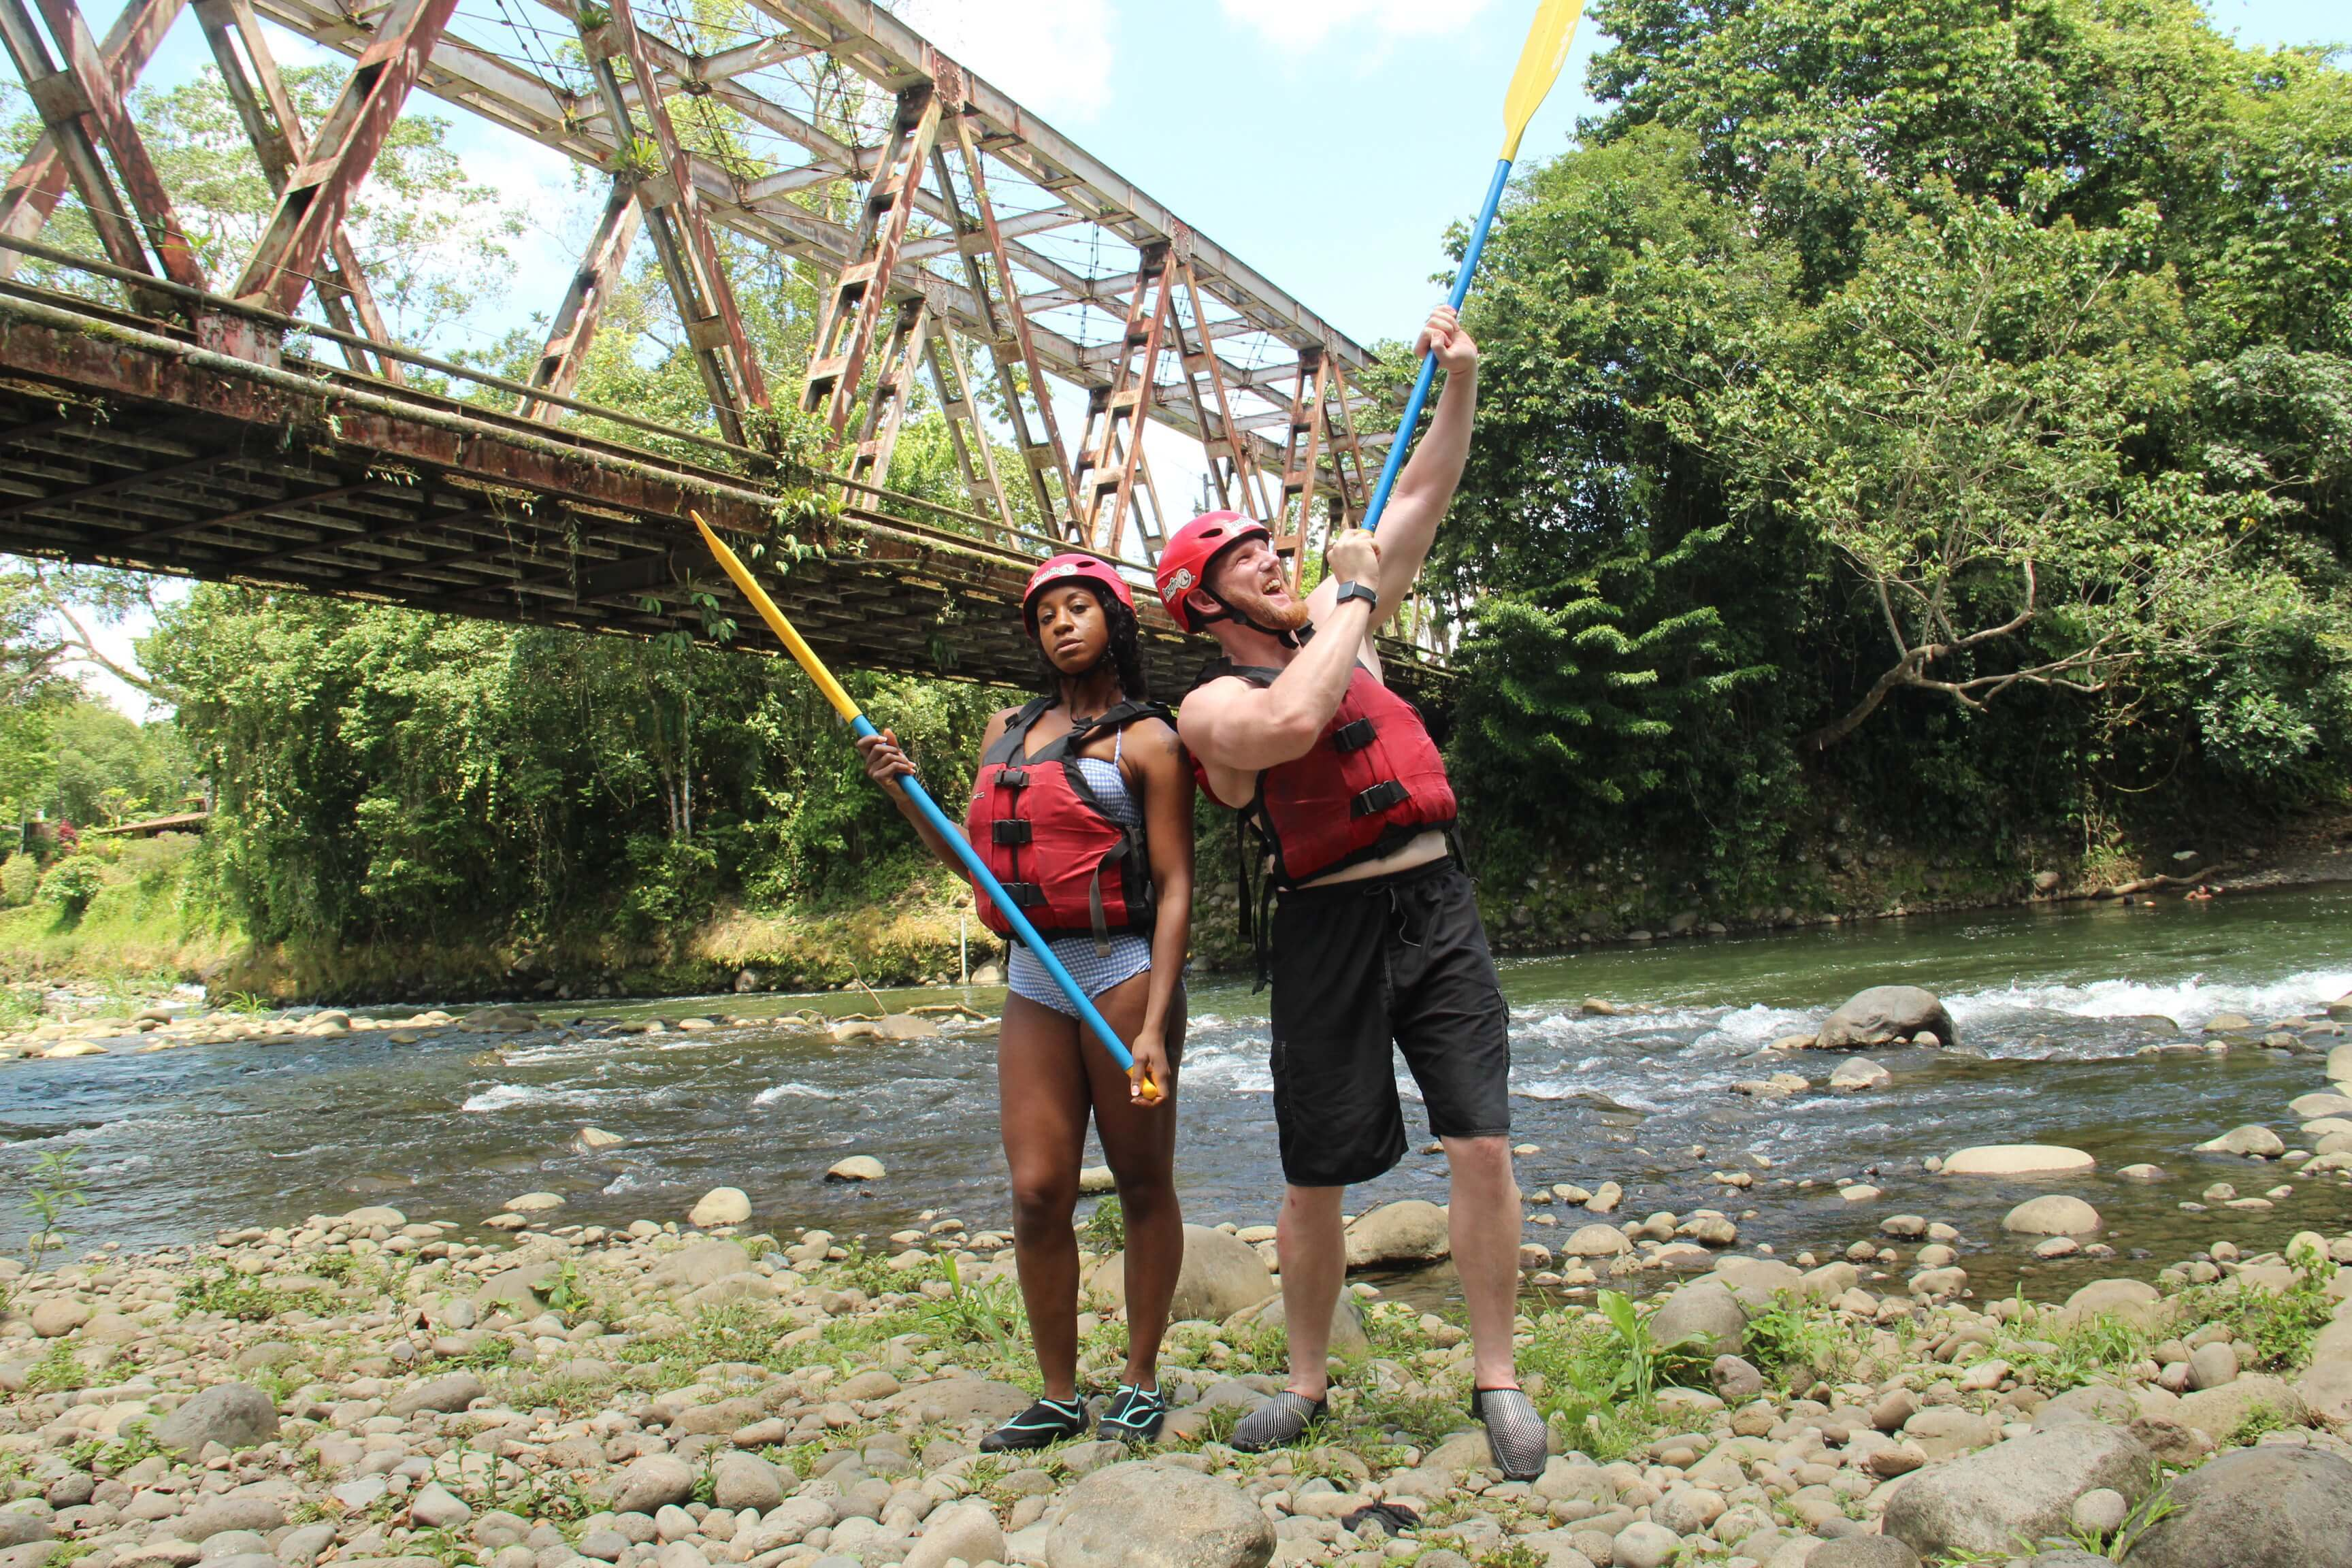 So much fun river rafting on the Class 2 and 3 Sarapiqui River with Desafio Adventure Company.